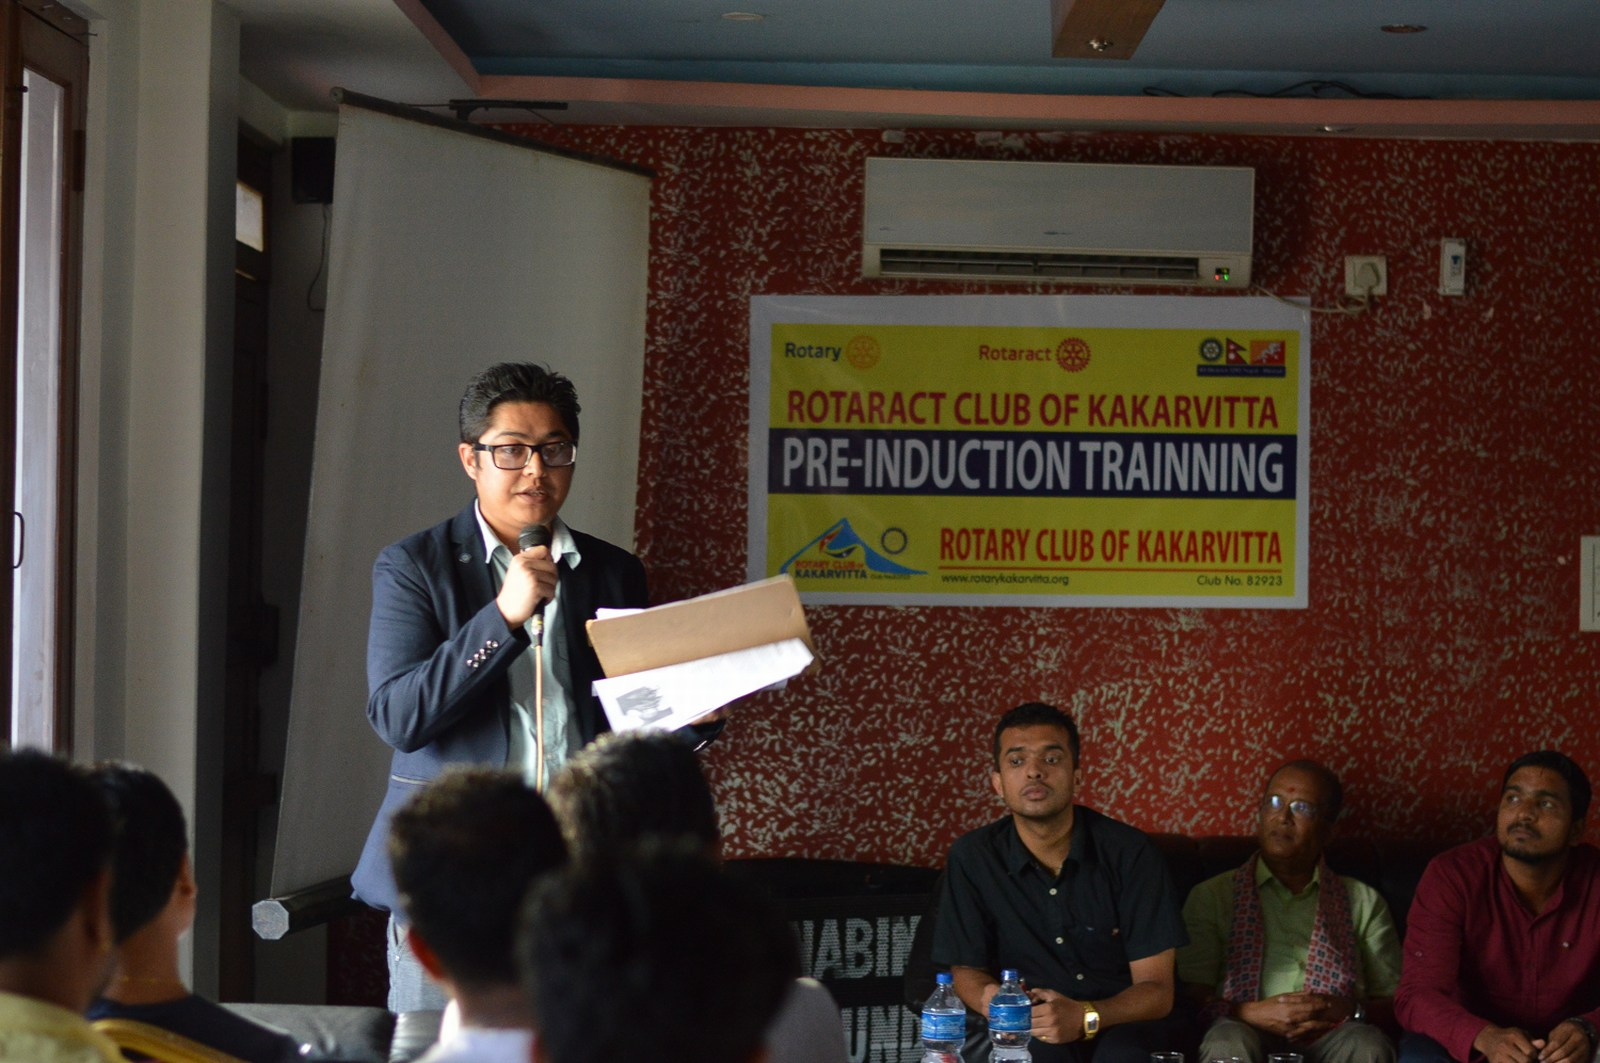 Pre-Induction-Training-of-Rotaract-Club-of-Kakarvitta-Rotary-Club-of-Kakarvitta-21